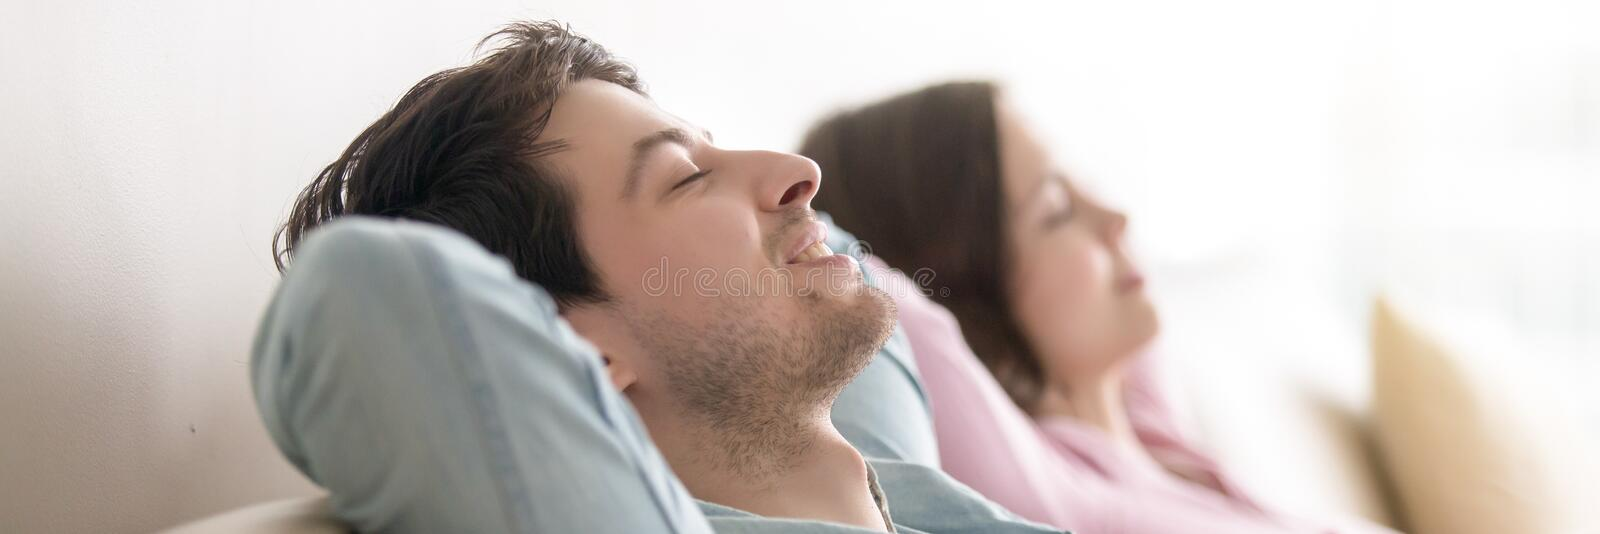 Horizontal photo married couple with closed eyes resting on couch royalty free stock image